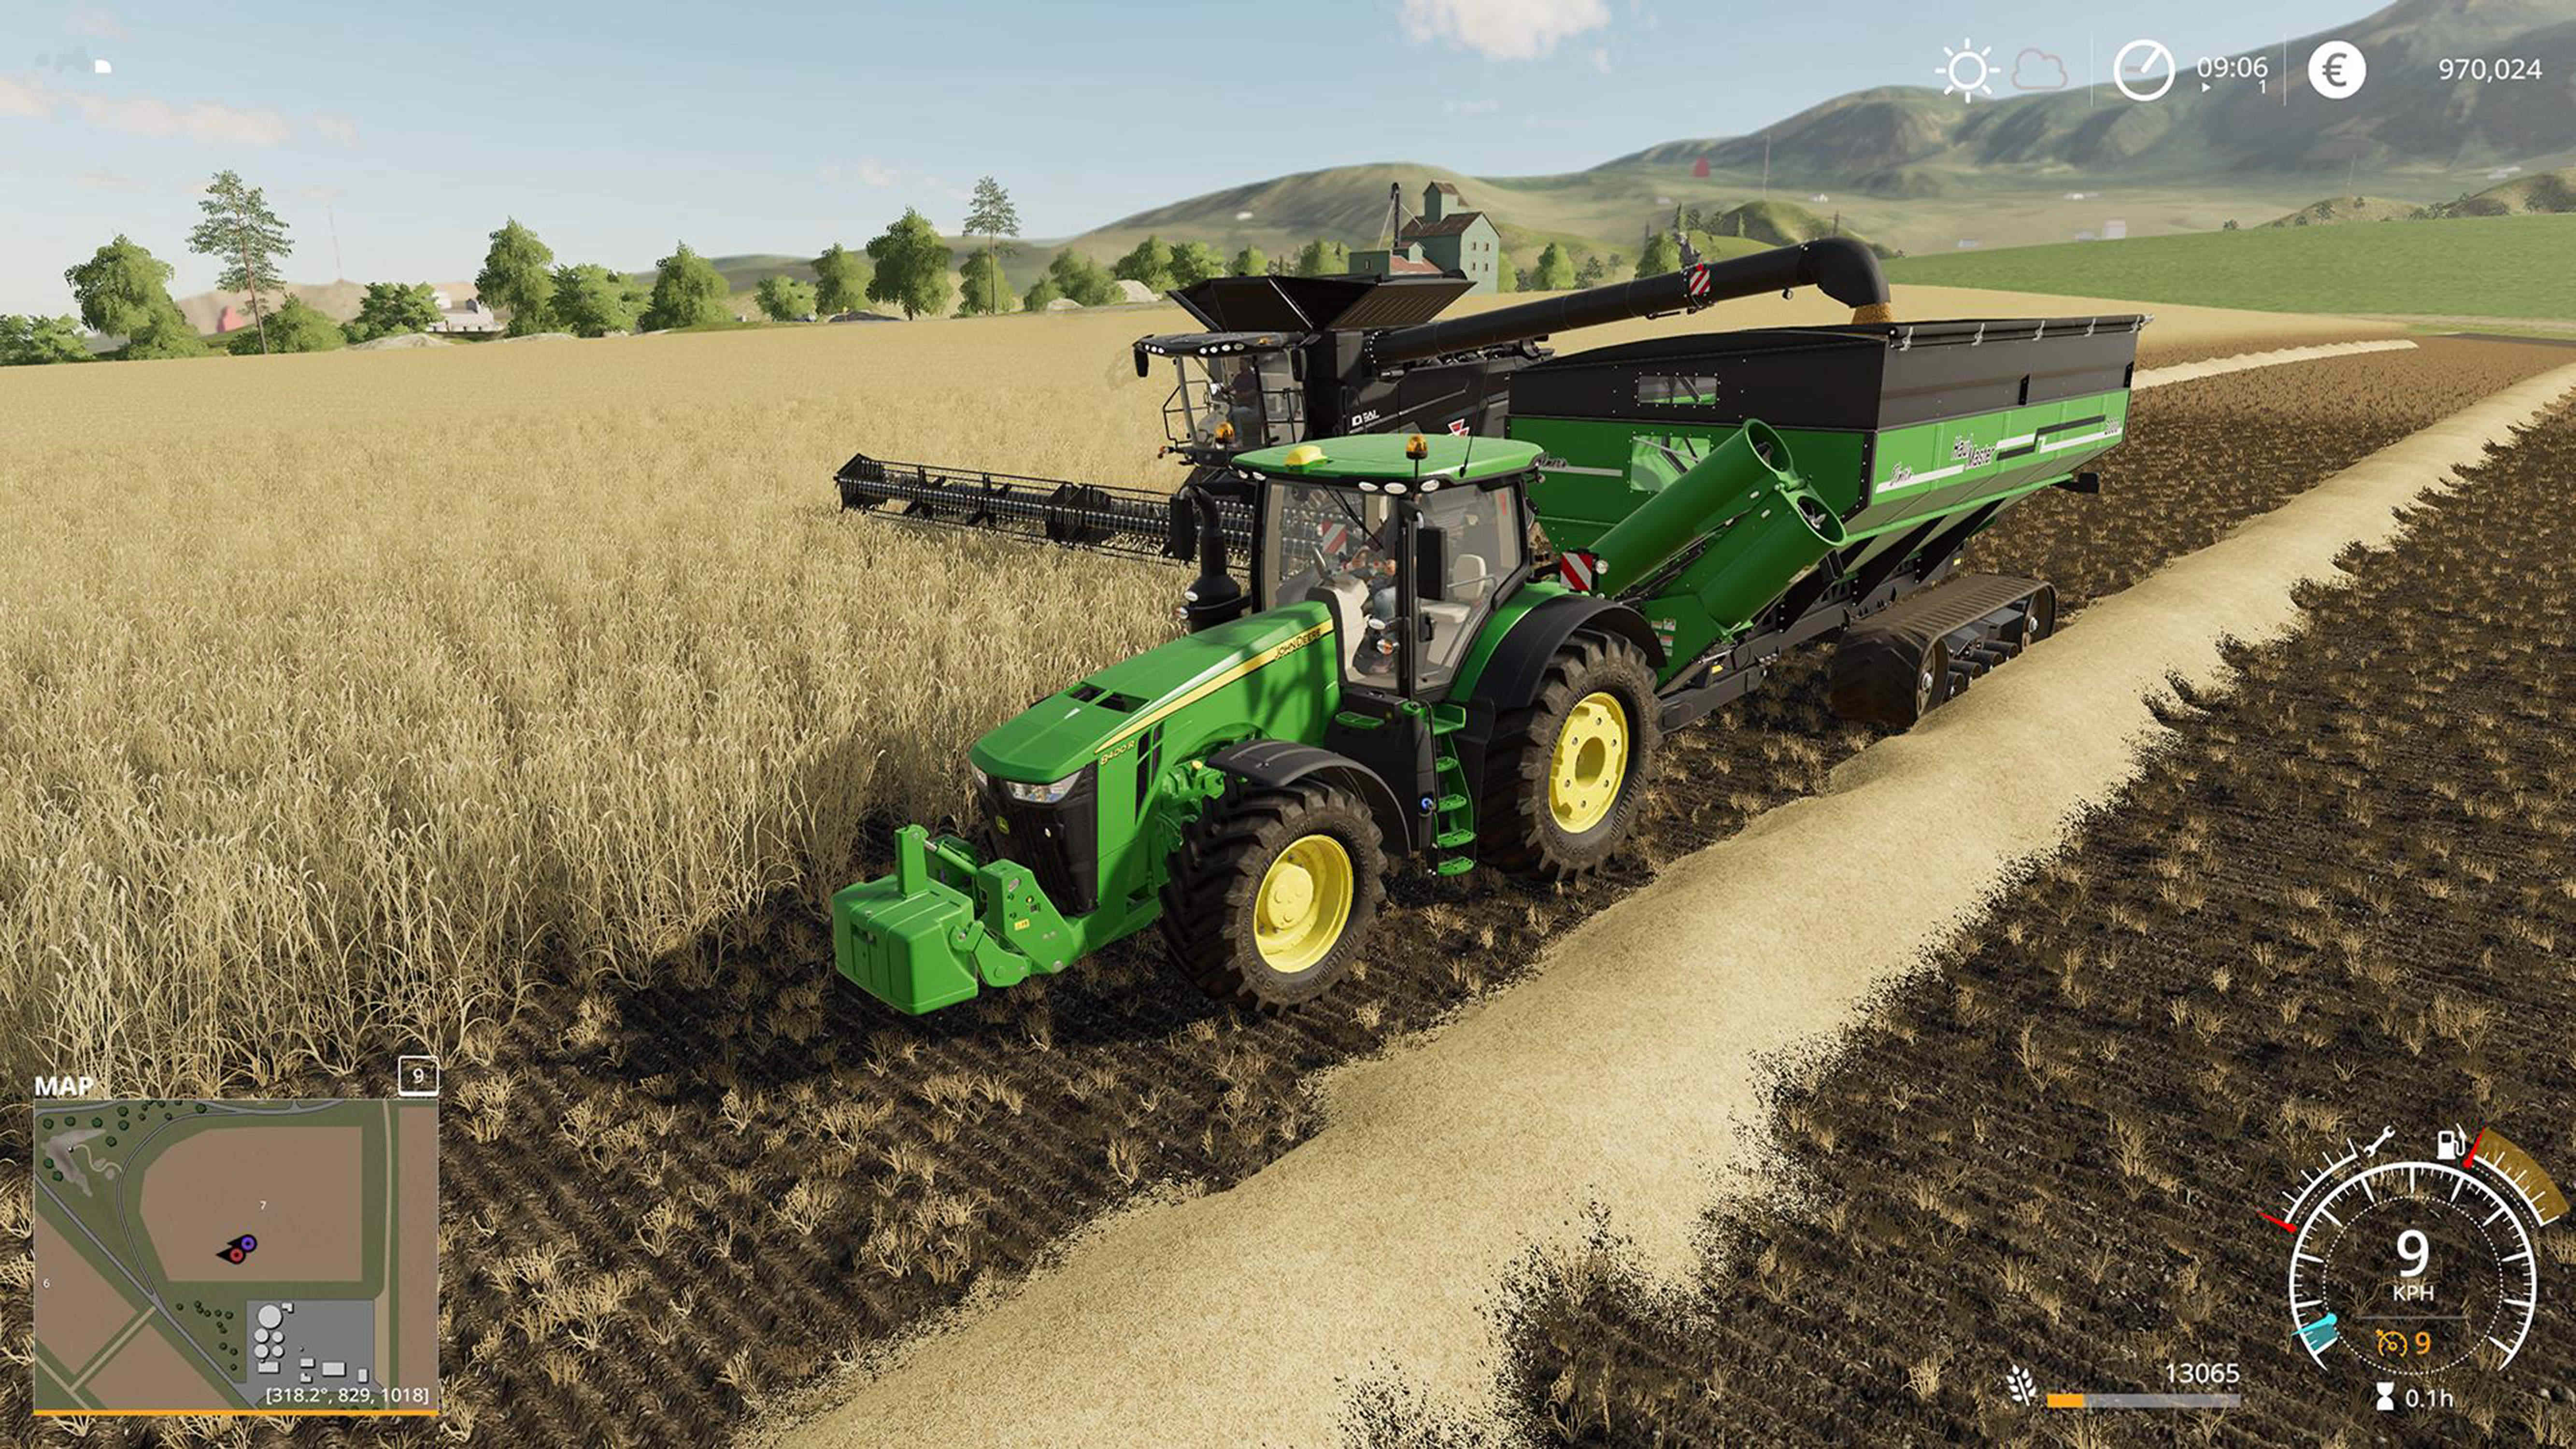 Game On Farming Simulator 19 Simulates Yes Farming